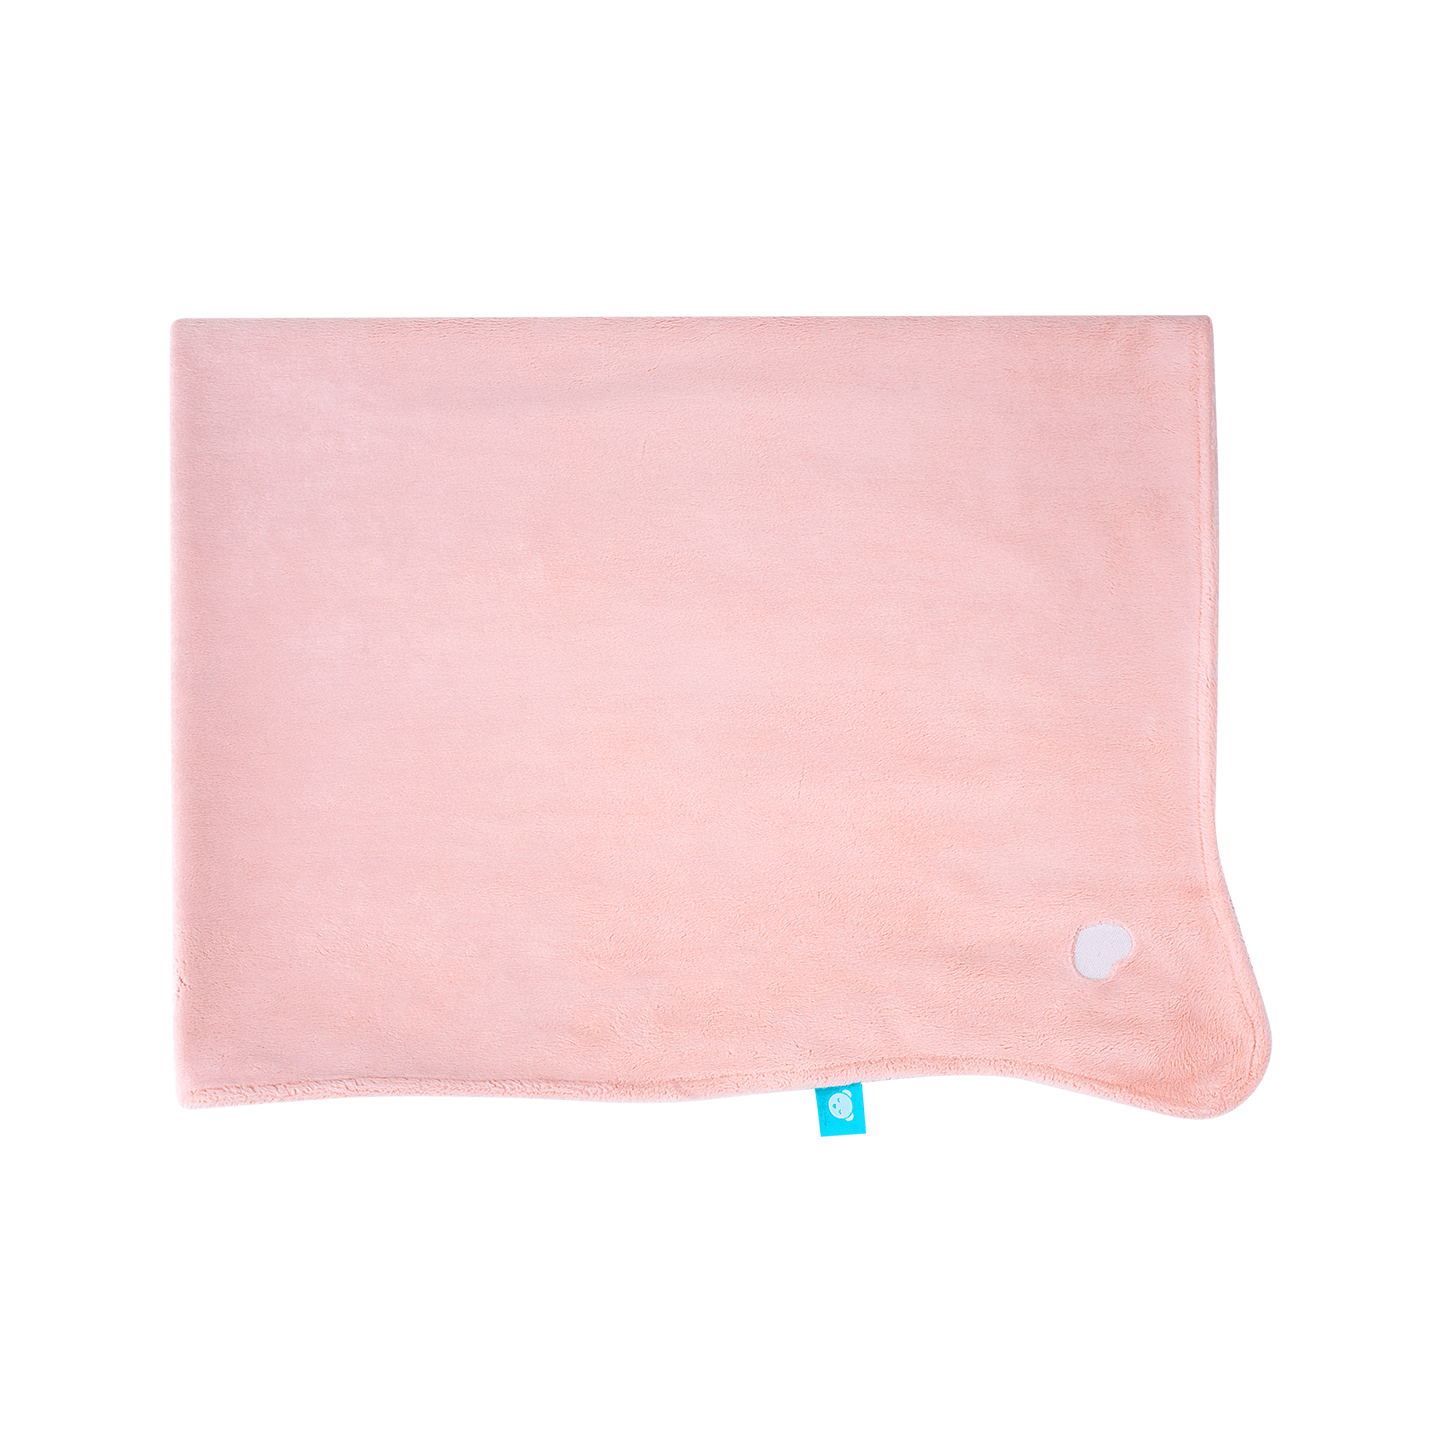 myHummy The Sleepthearts' Favorite Blanket - pink/grey